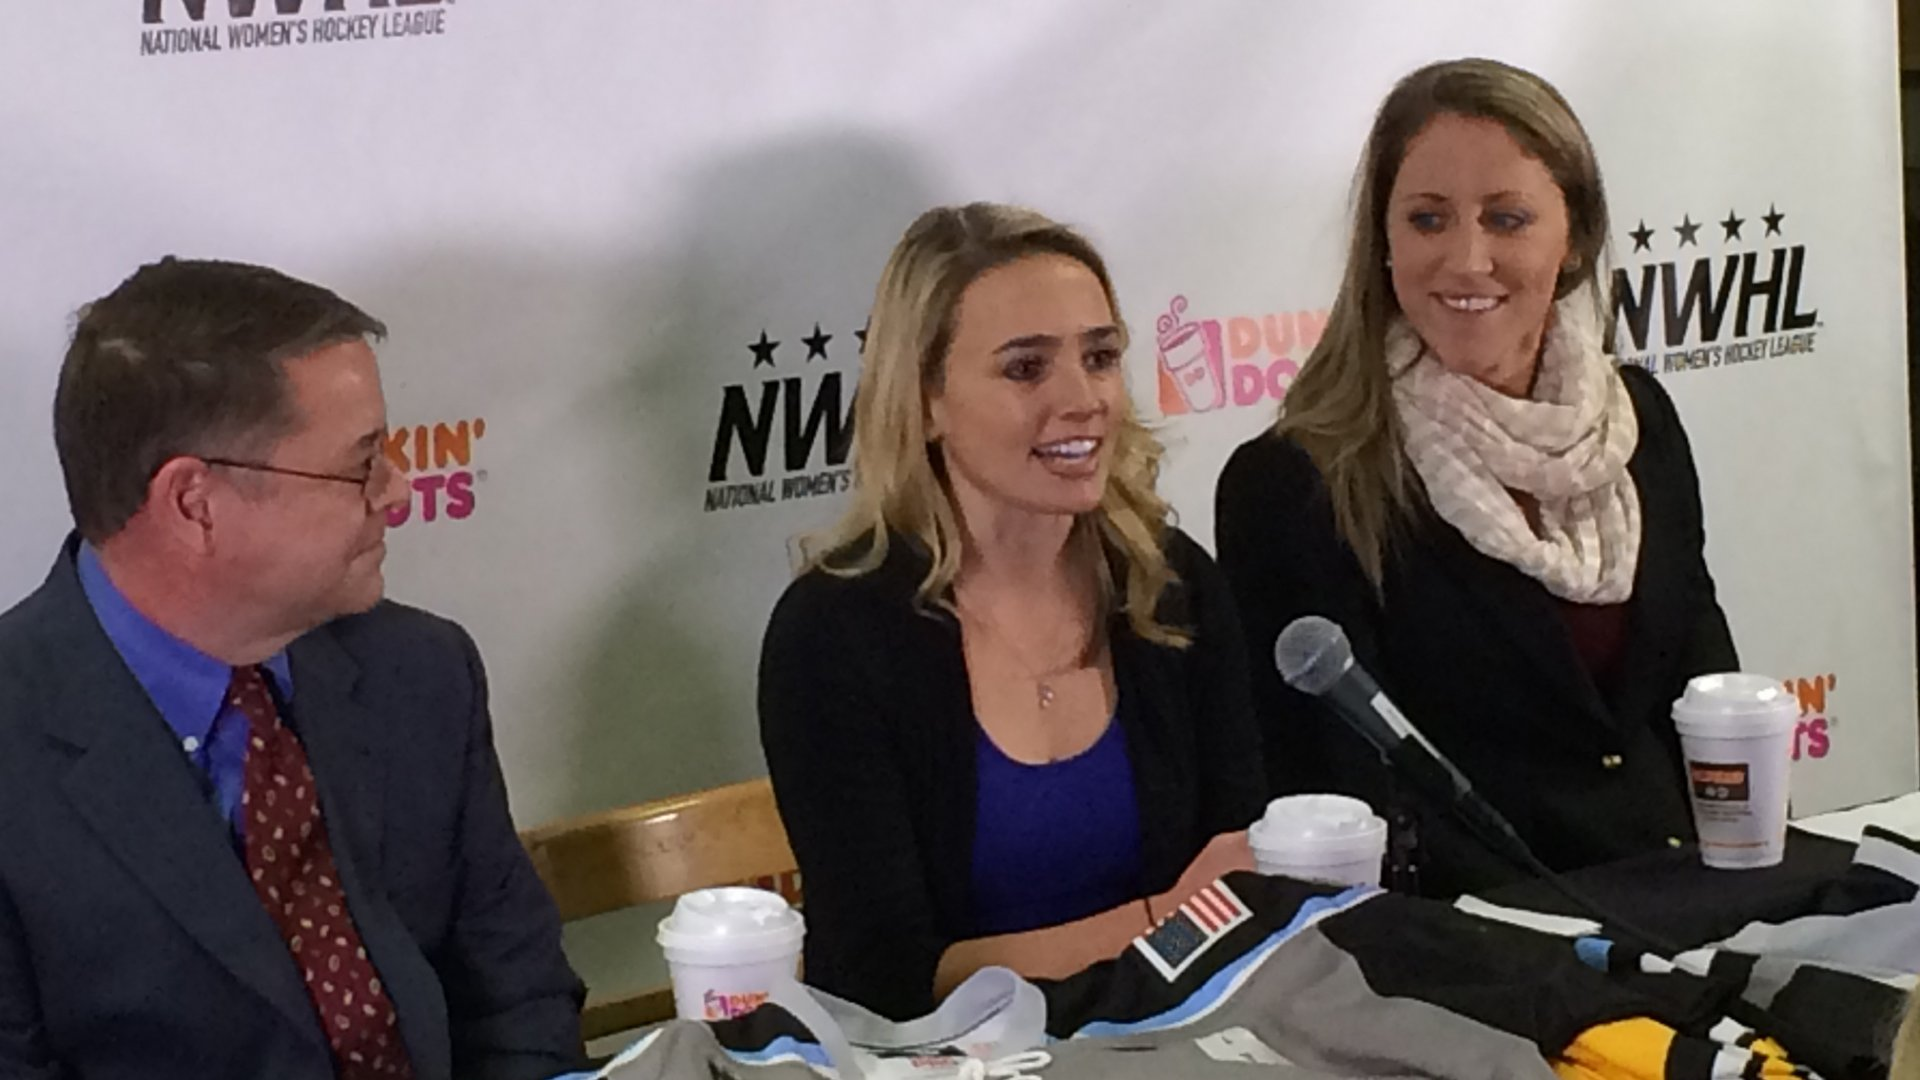 Dunkin Donuts skates in as the first corporate sponsor of the NWHL.